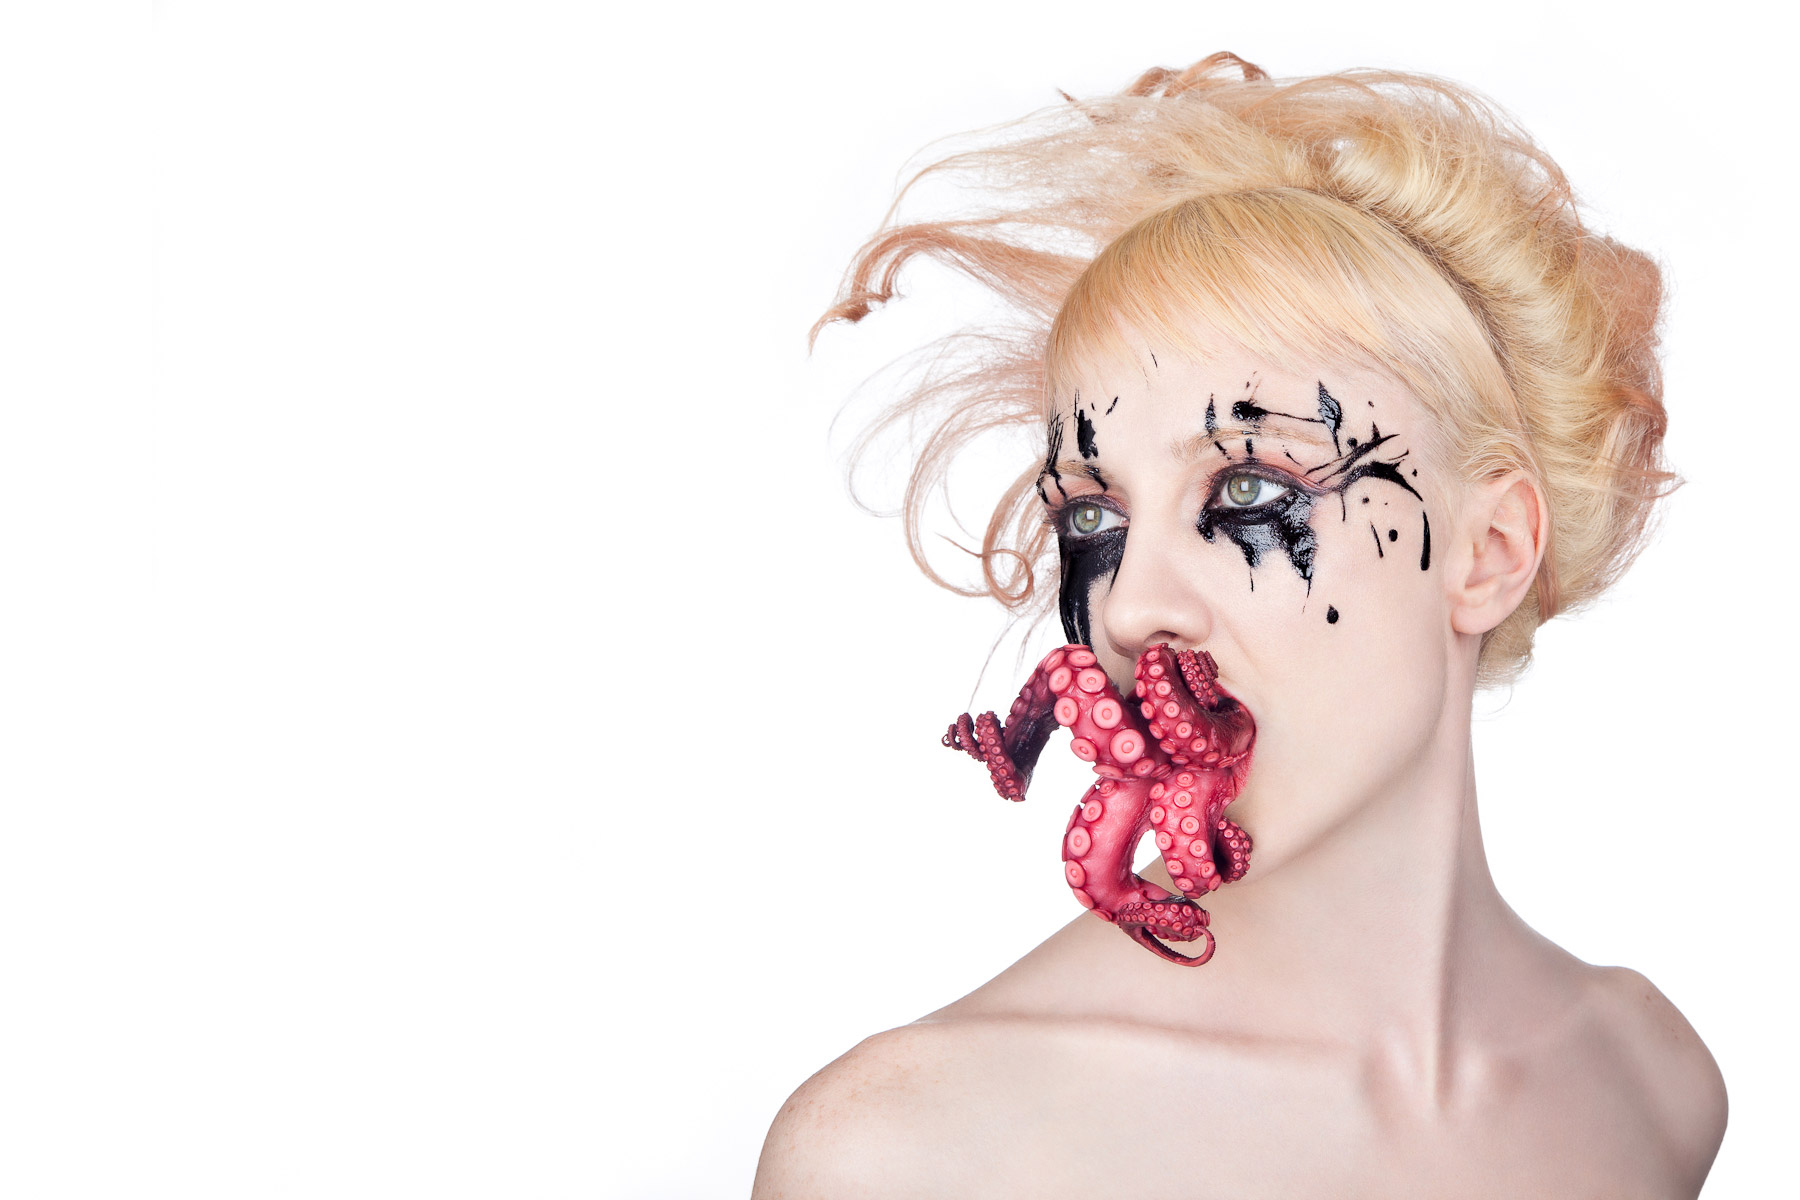 Kitfox Valentín : Conceptual Beauty with Octopus tentacles